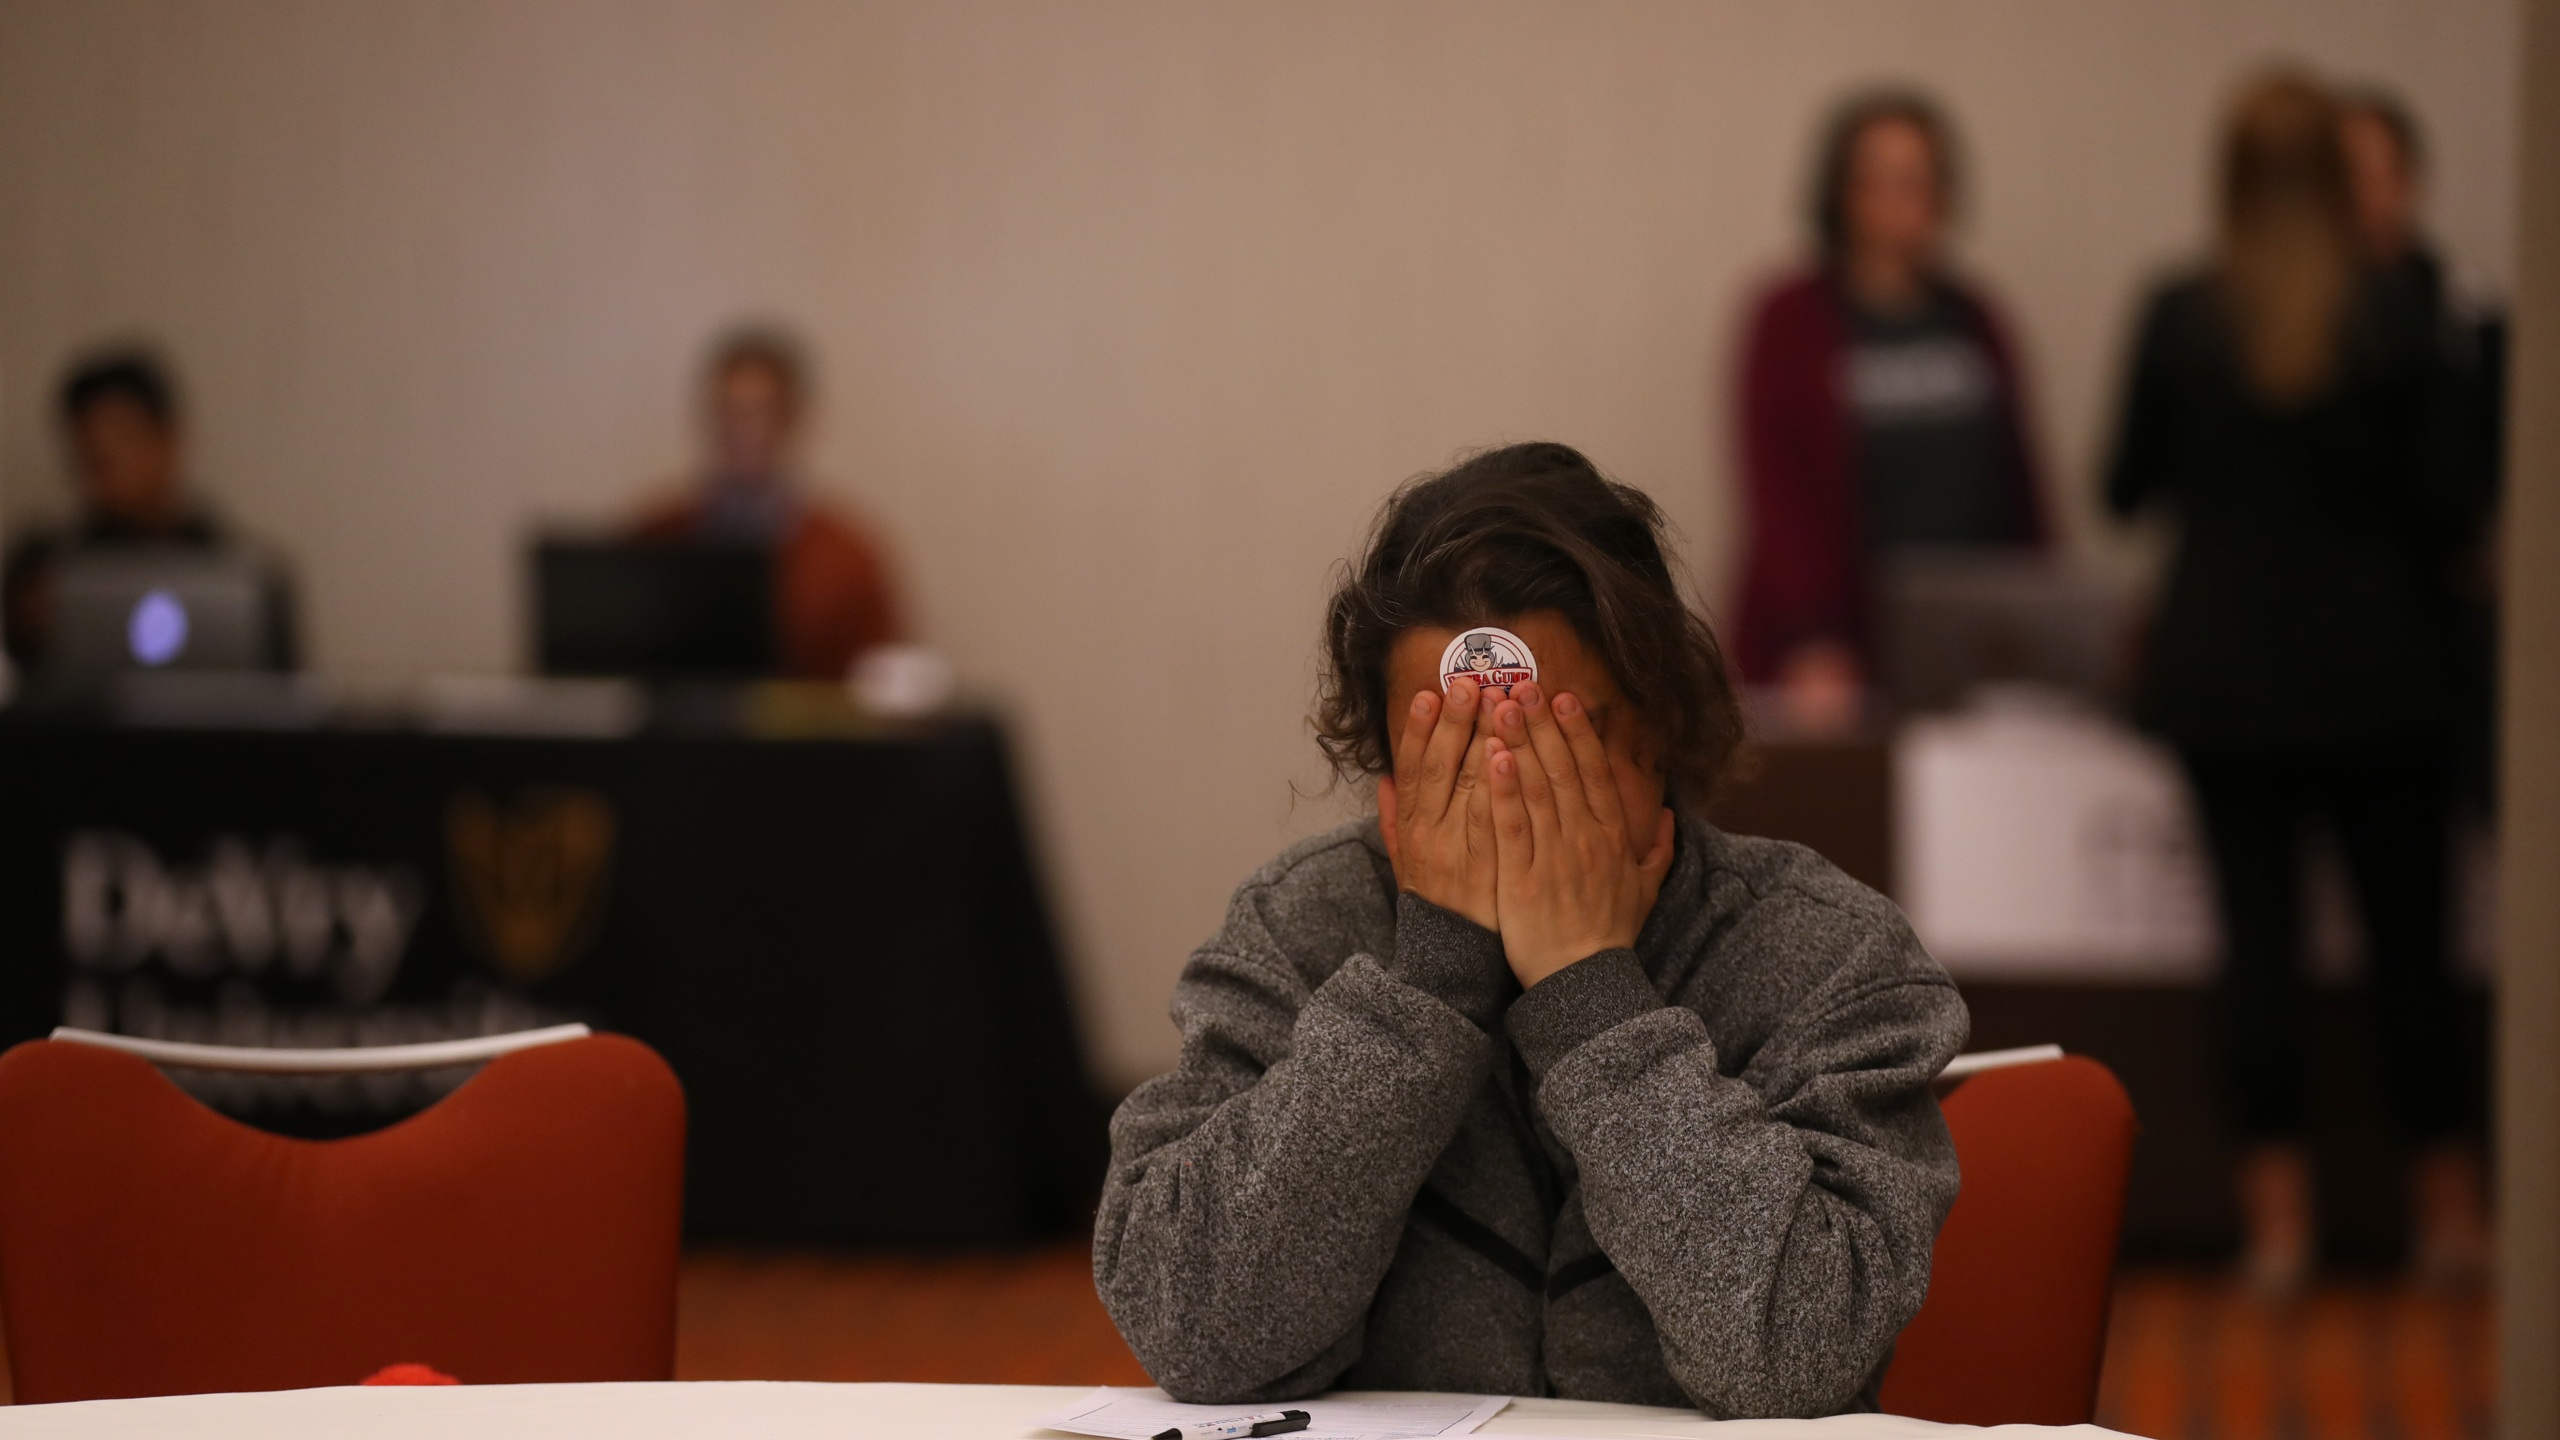 A job seeker pauses while filling out an application at the HireLive career fair on April 04, 2019 in San Francisco, California. (Justin Sullivan/Getty Images)